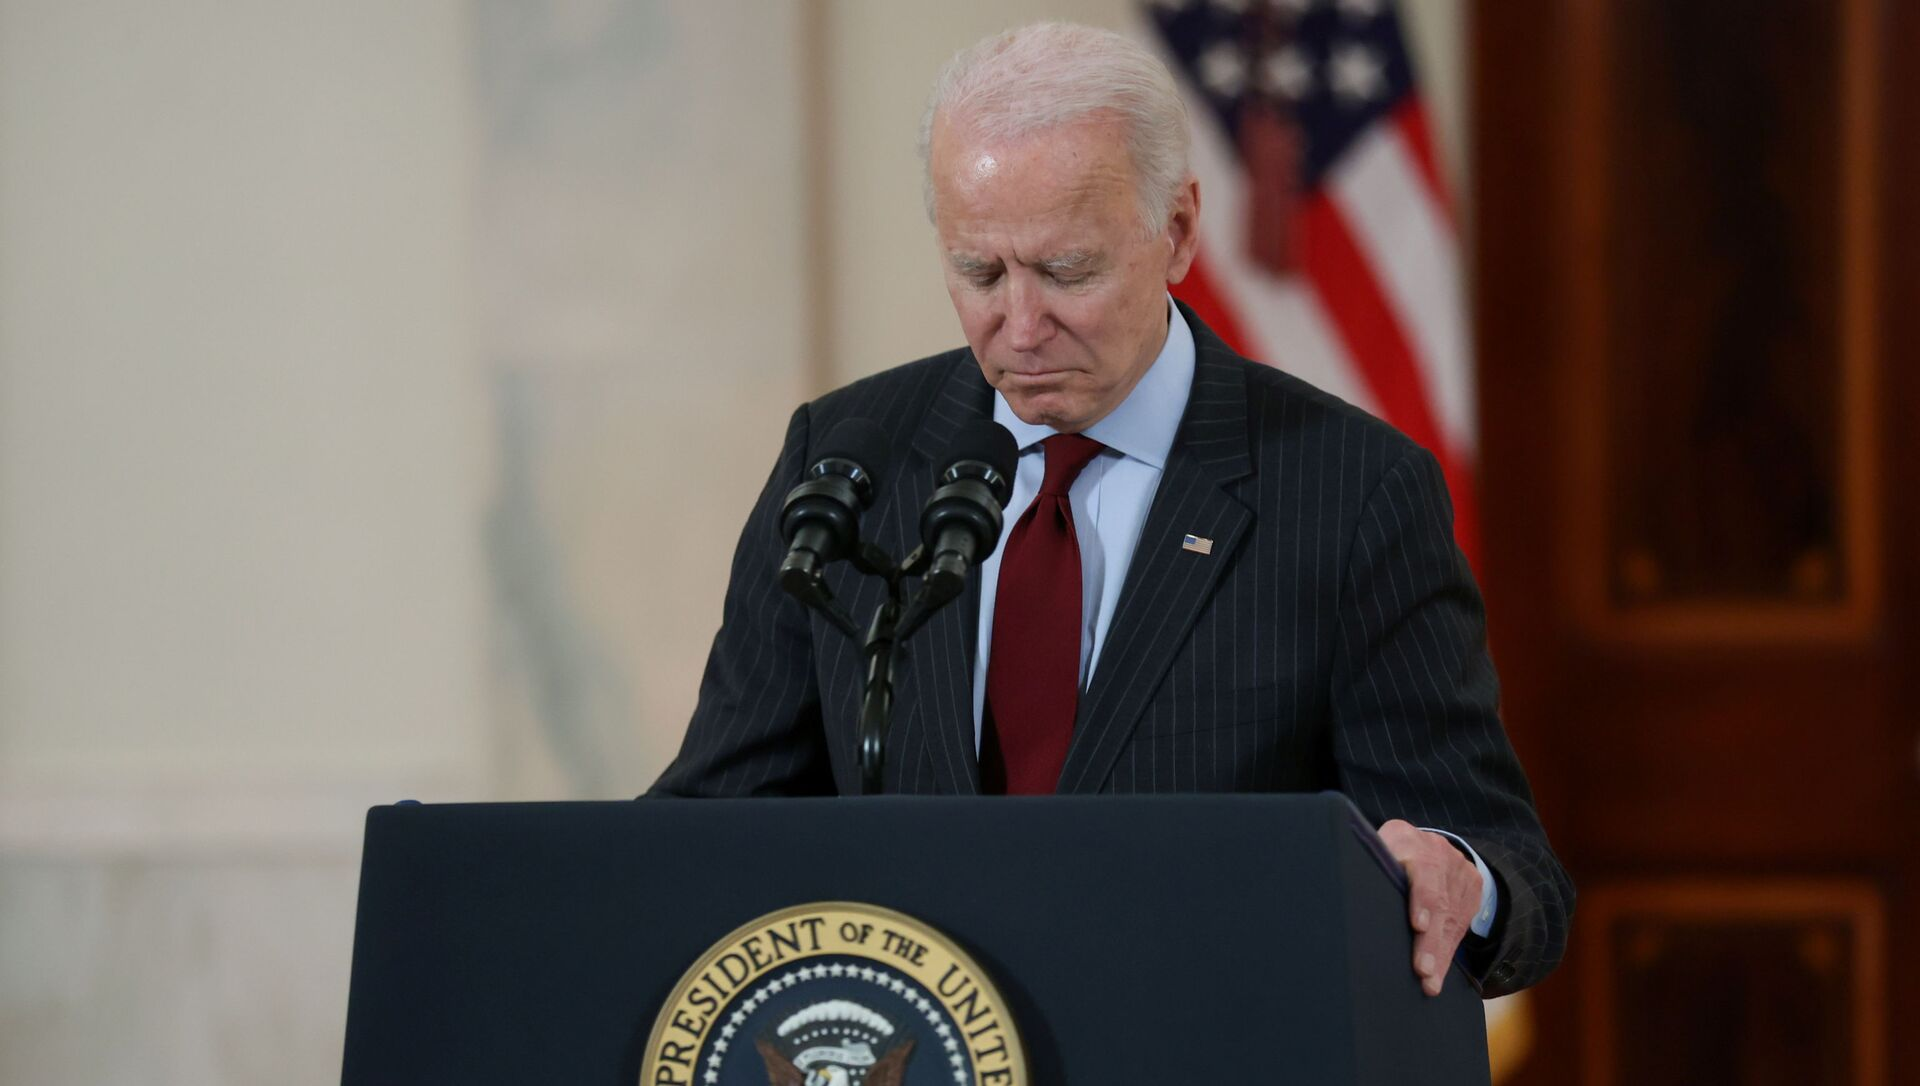 US President Joe Biden concludes his remarks in honor of the 500,000 US deaths from the coronavirus disease (COVID-19), in the Cross Hall at the White House in Washington, U.S., February 22, 2021 - Sputnik International, 1920, 23.02.2021